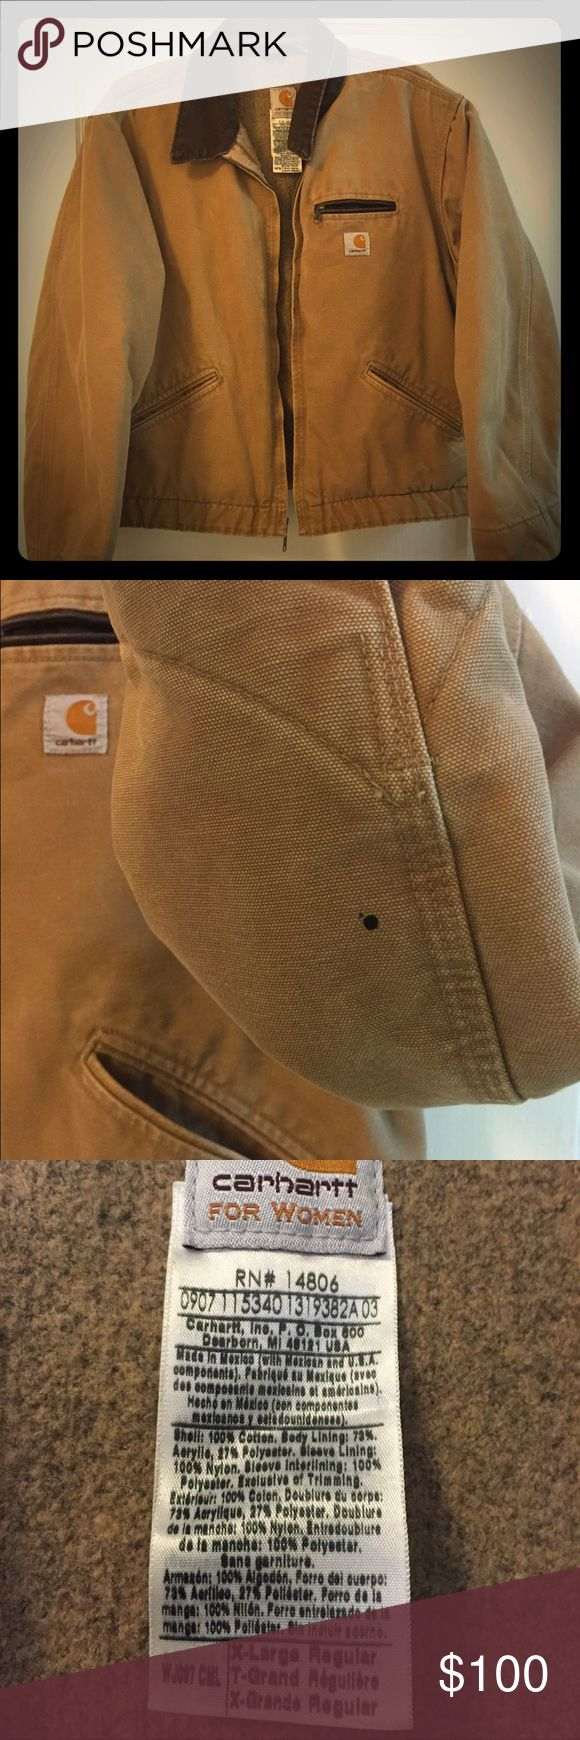 Women's XL Carhartt Coat USED Women's Carhartt Coat. Small ink stain on one sleeve and two oil stains on the back. See photos. No holes or missing zippers or buttons. Broken in but has lots of life left. Carhartt Jackets & Coats Utility Jackets